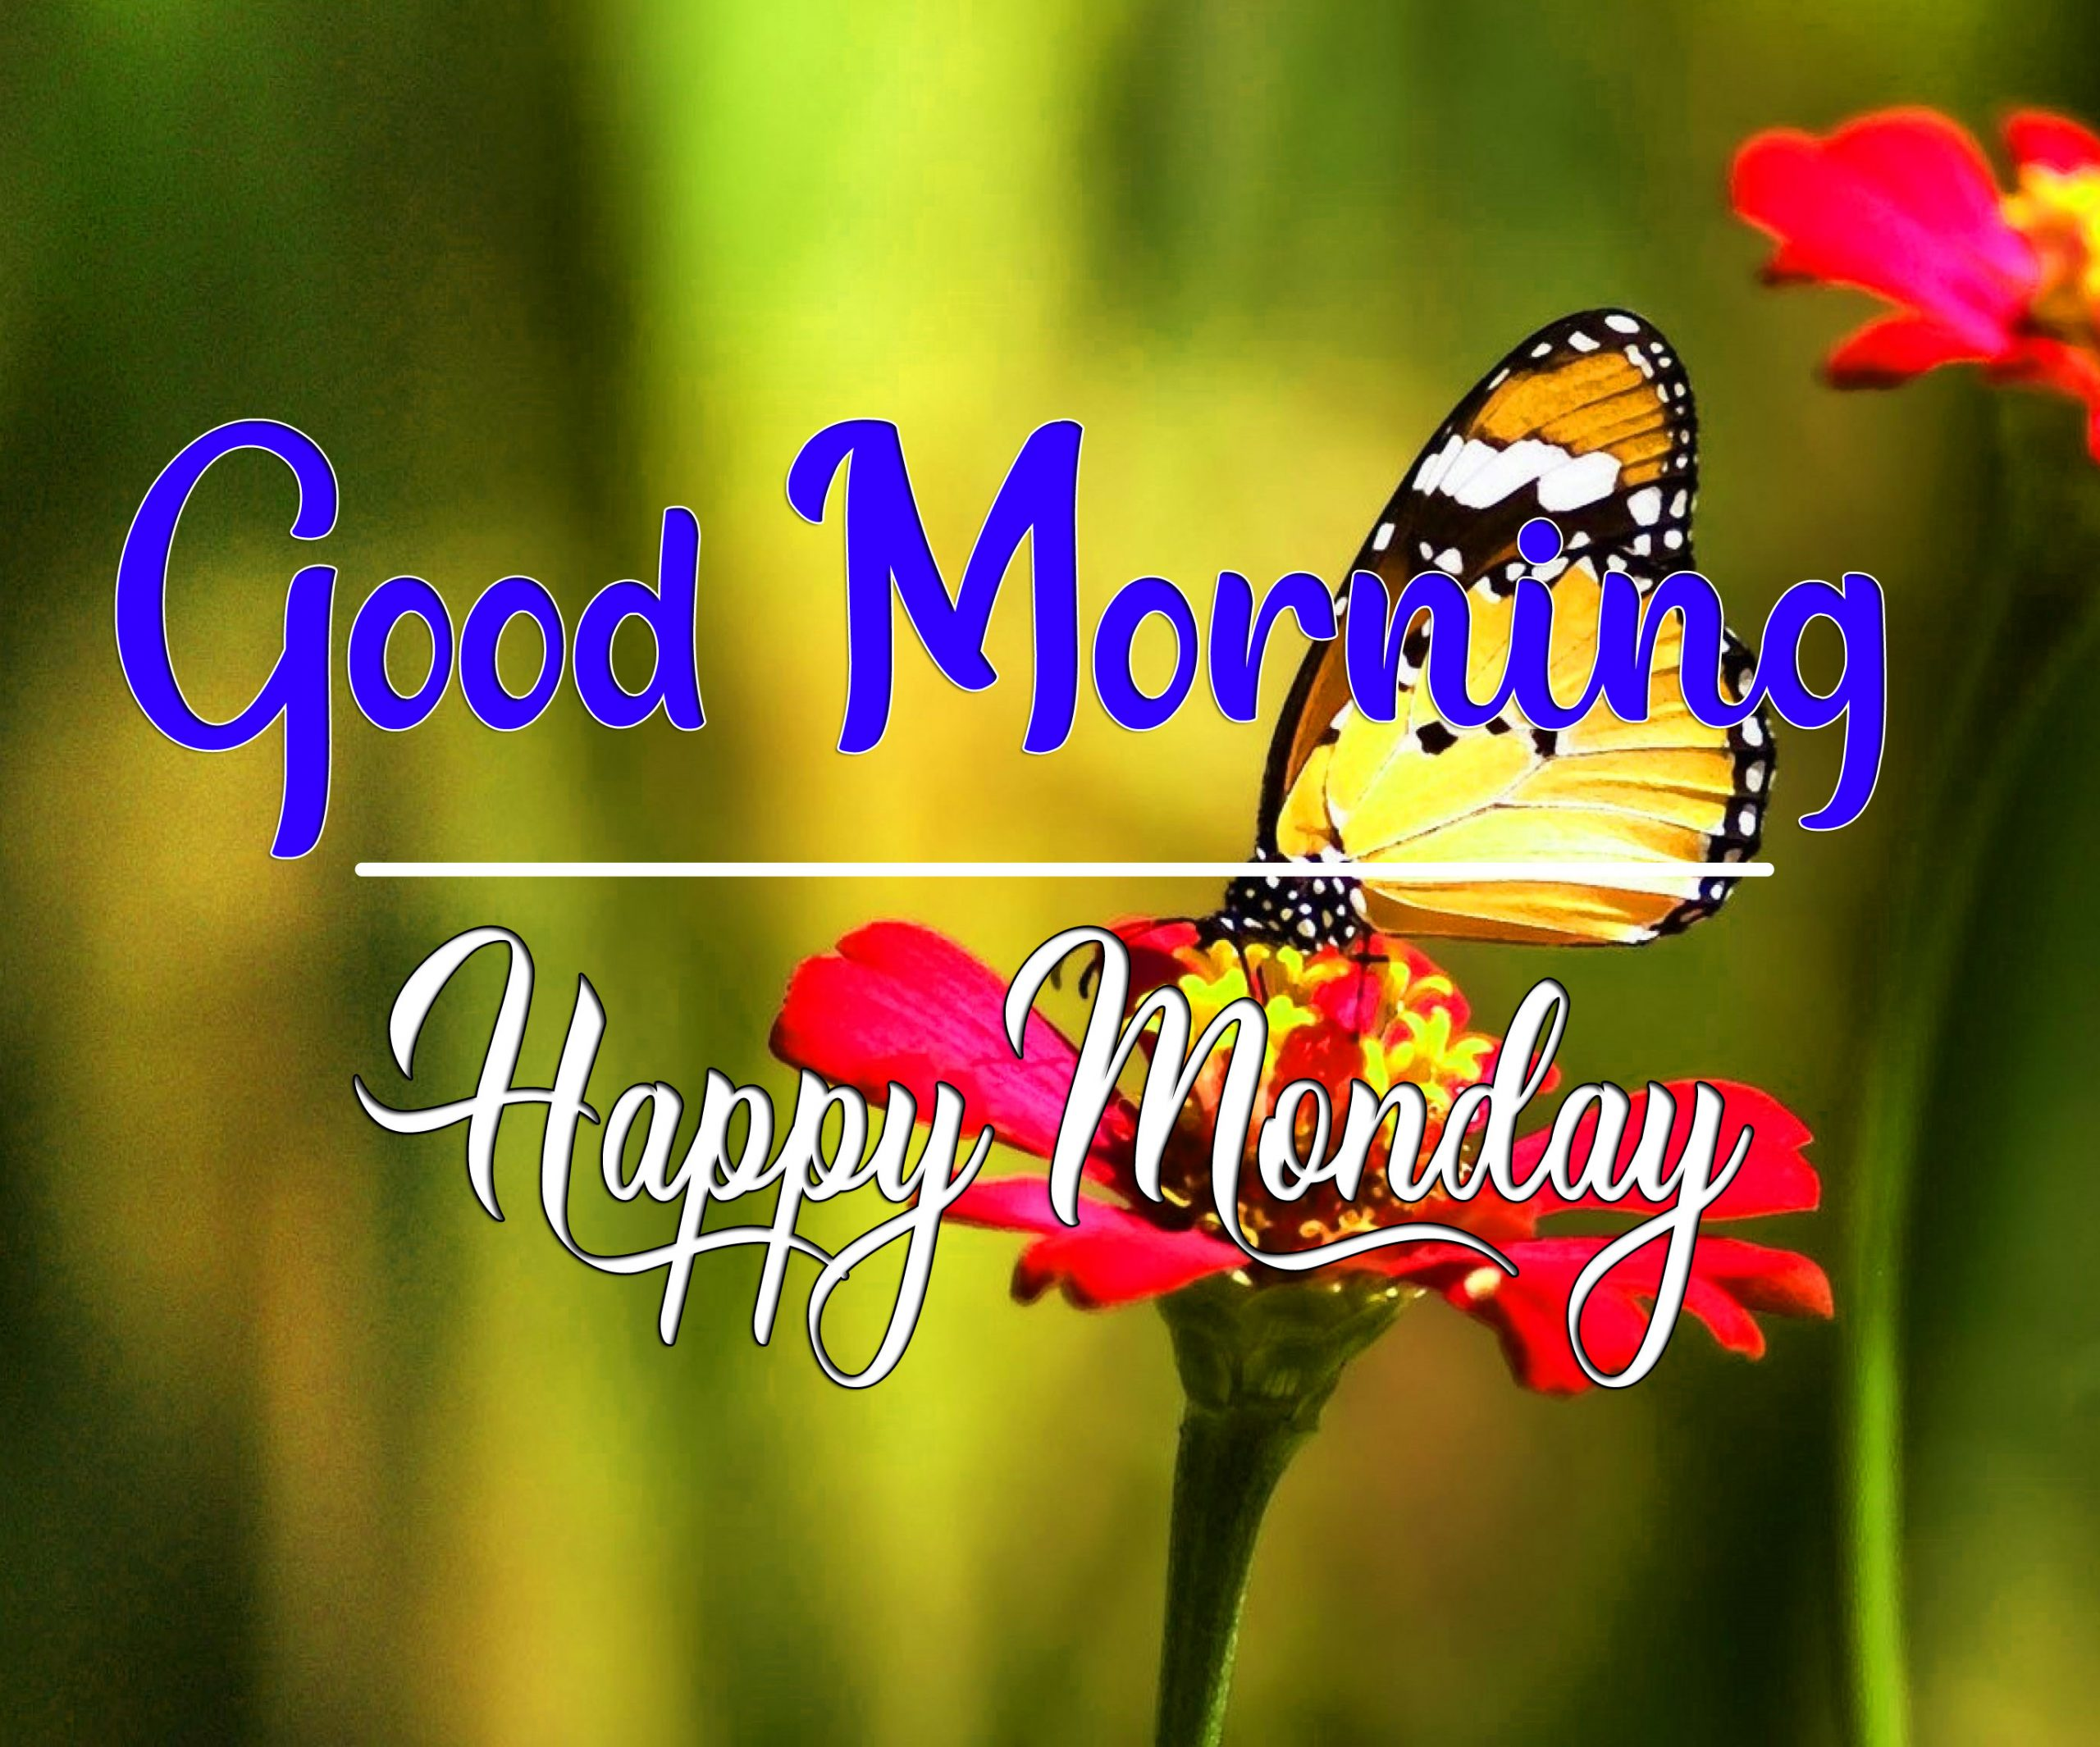 Monday Good Morning Pics Pictures 2021 1